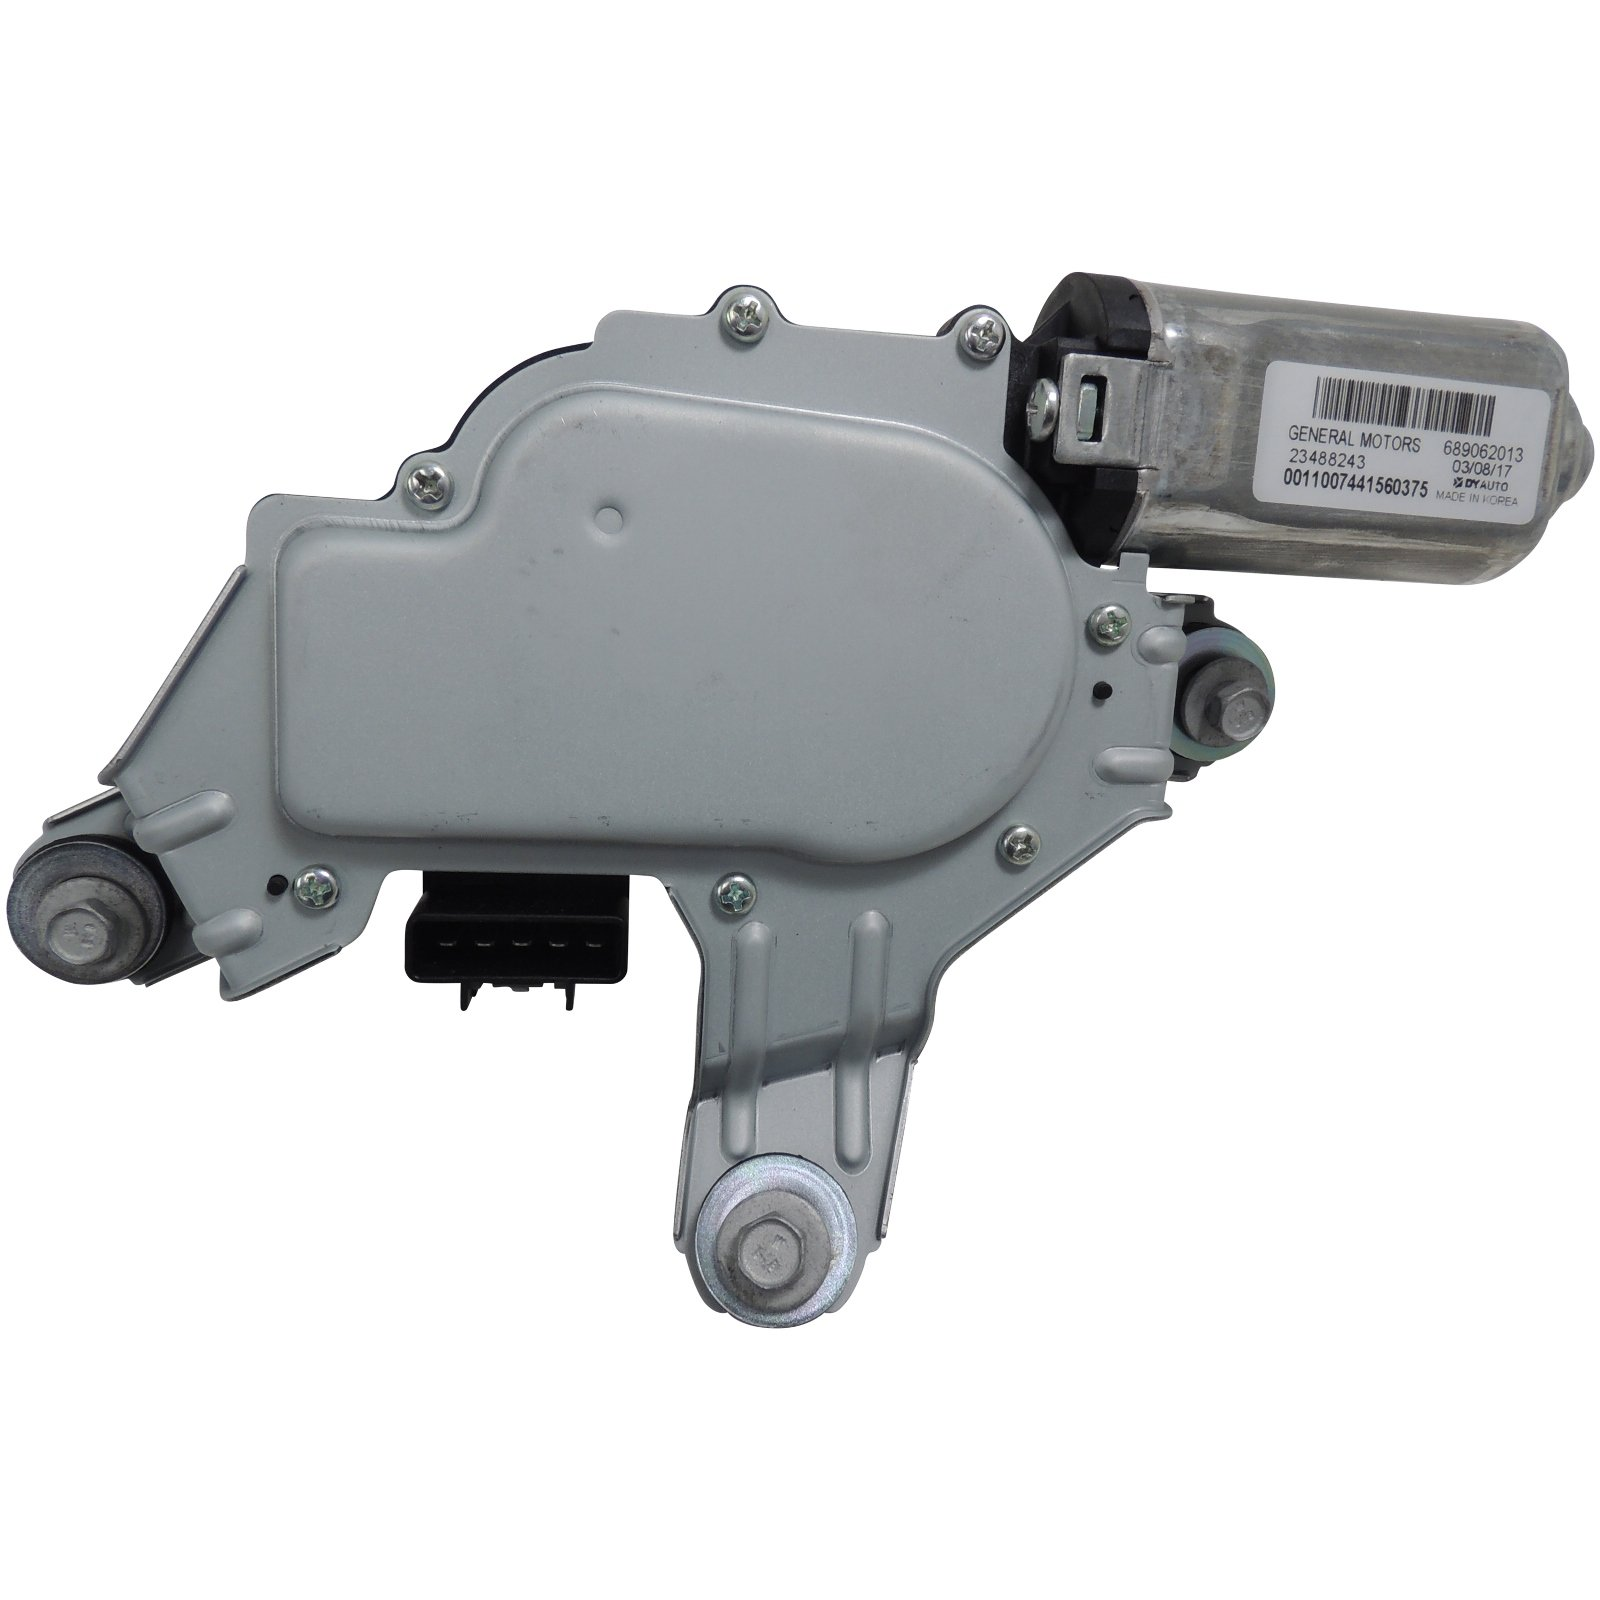 ACDelco 23488243 GM Original Equipment Rear Window Wiper Motor by ACDelco